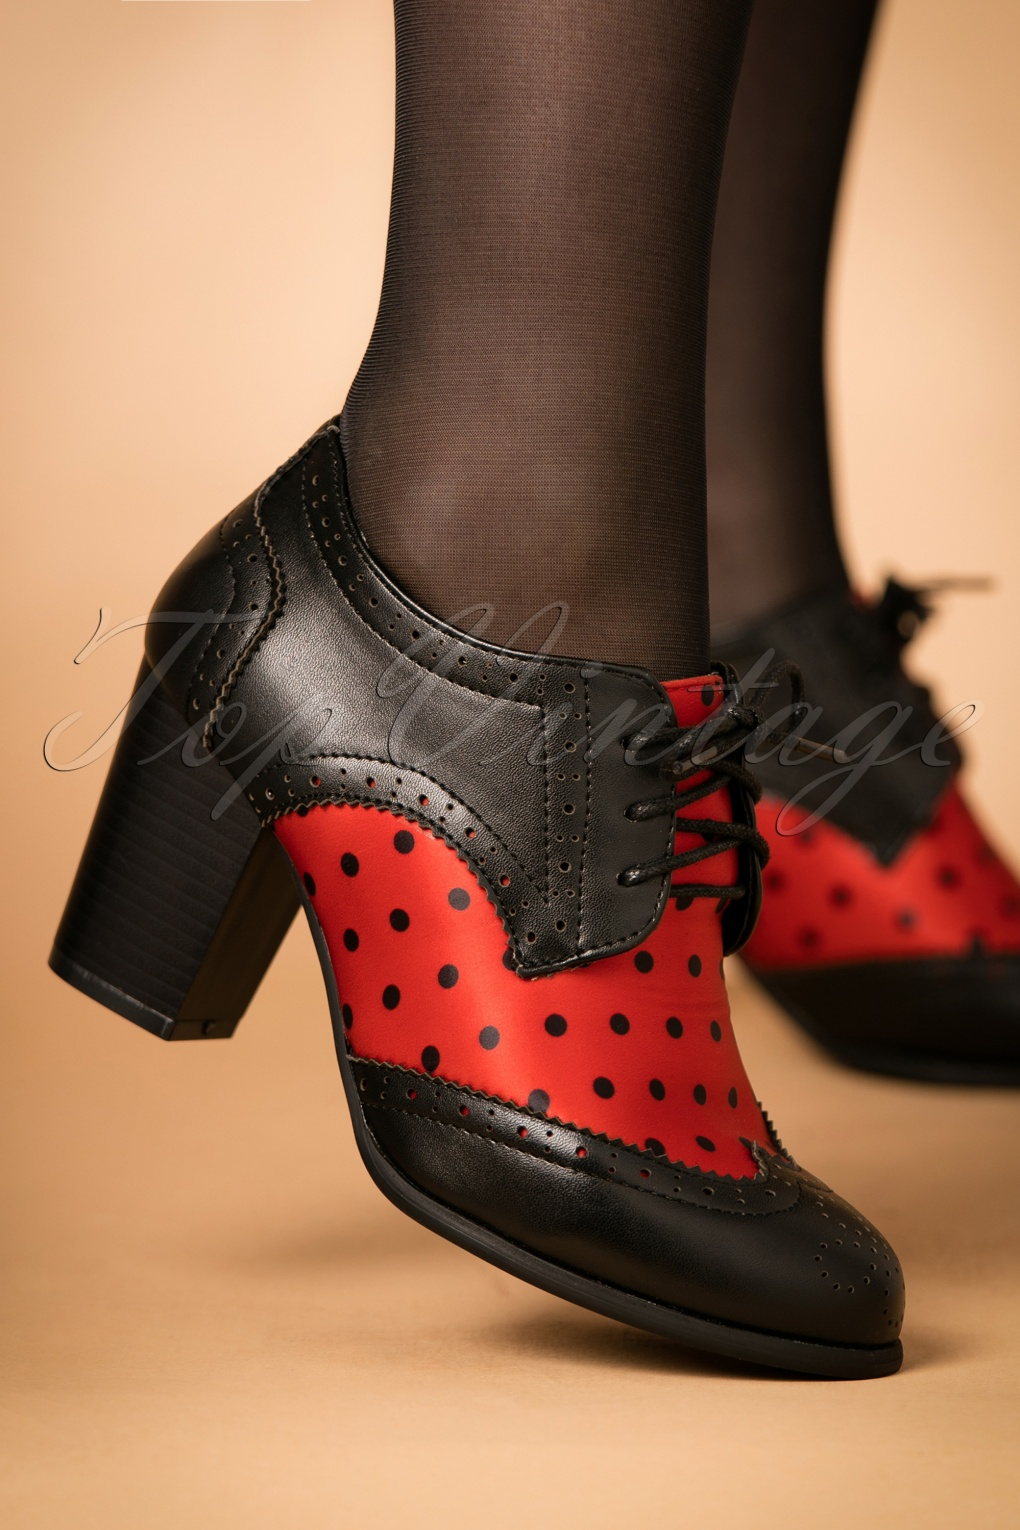 1950s Shoe Styles- History and Shopping Guide